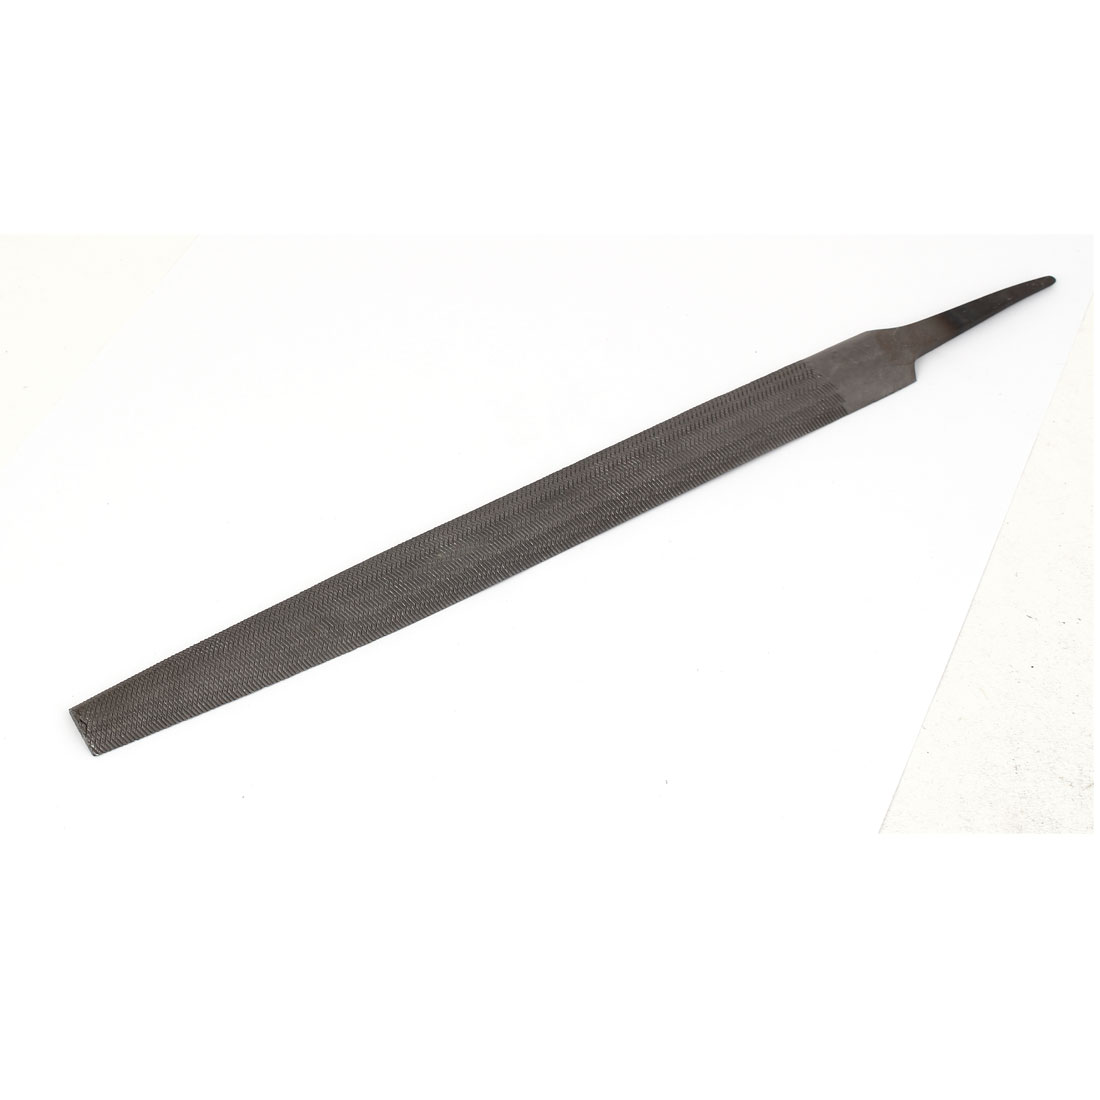 "12"" Double Sided Half-round Carpentry Wood Rasp File Hand Tool"